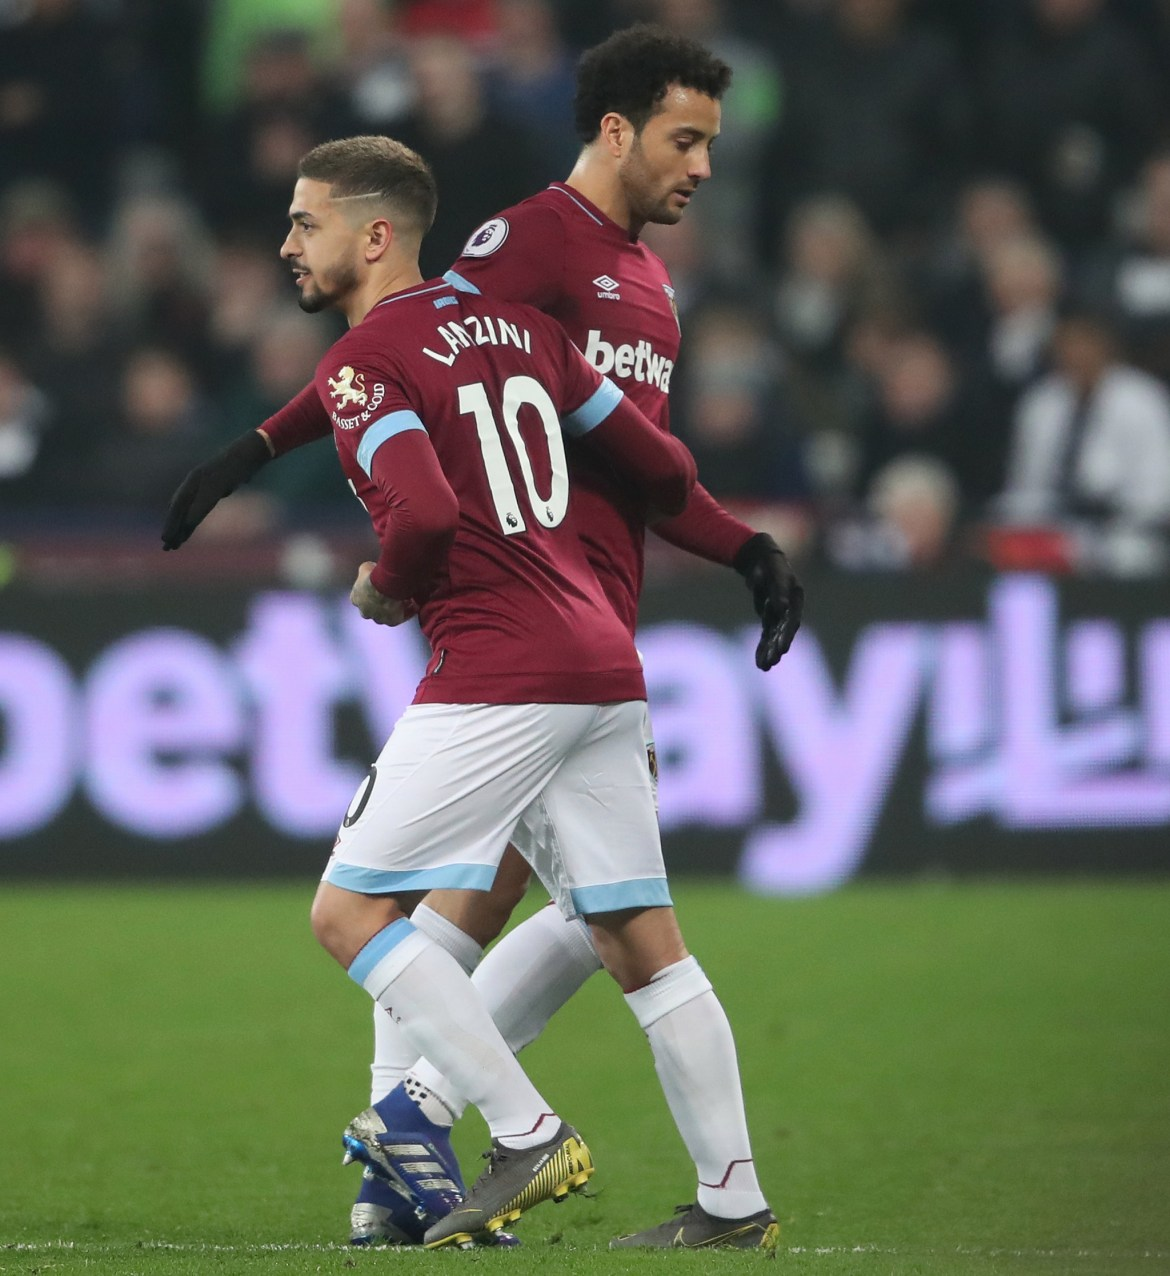 West Ham manager David Moyes hopes to sell Felipe Anderson and Manuel Lanzini, to help his attempts to keep Declan Rice